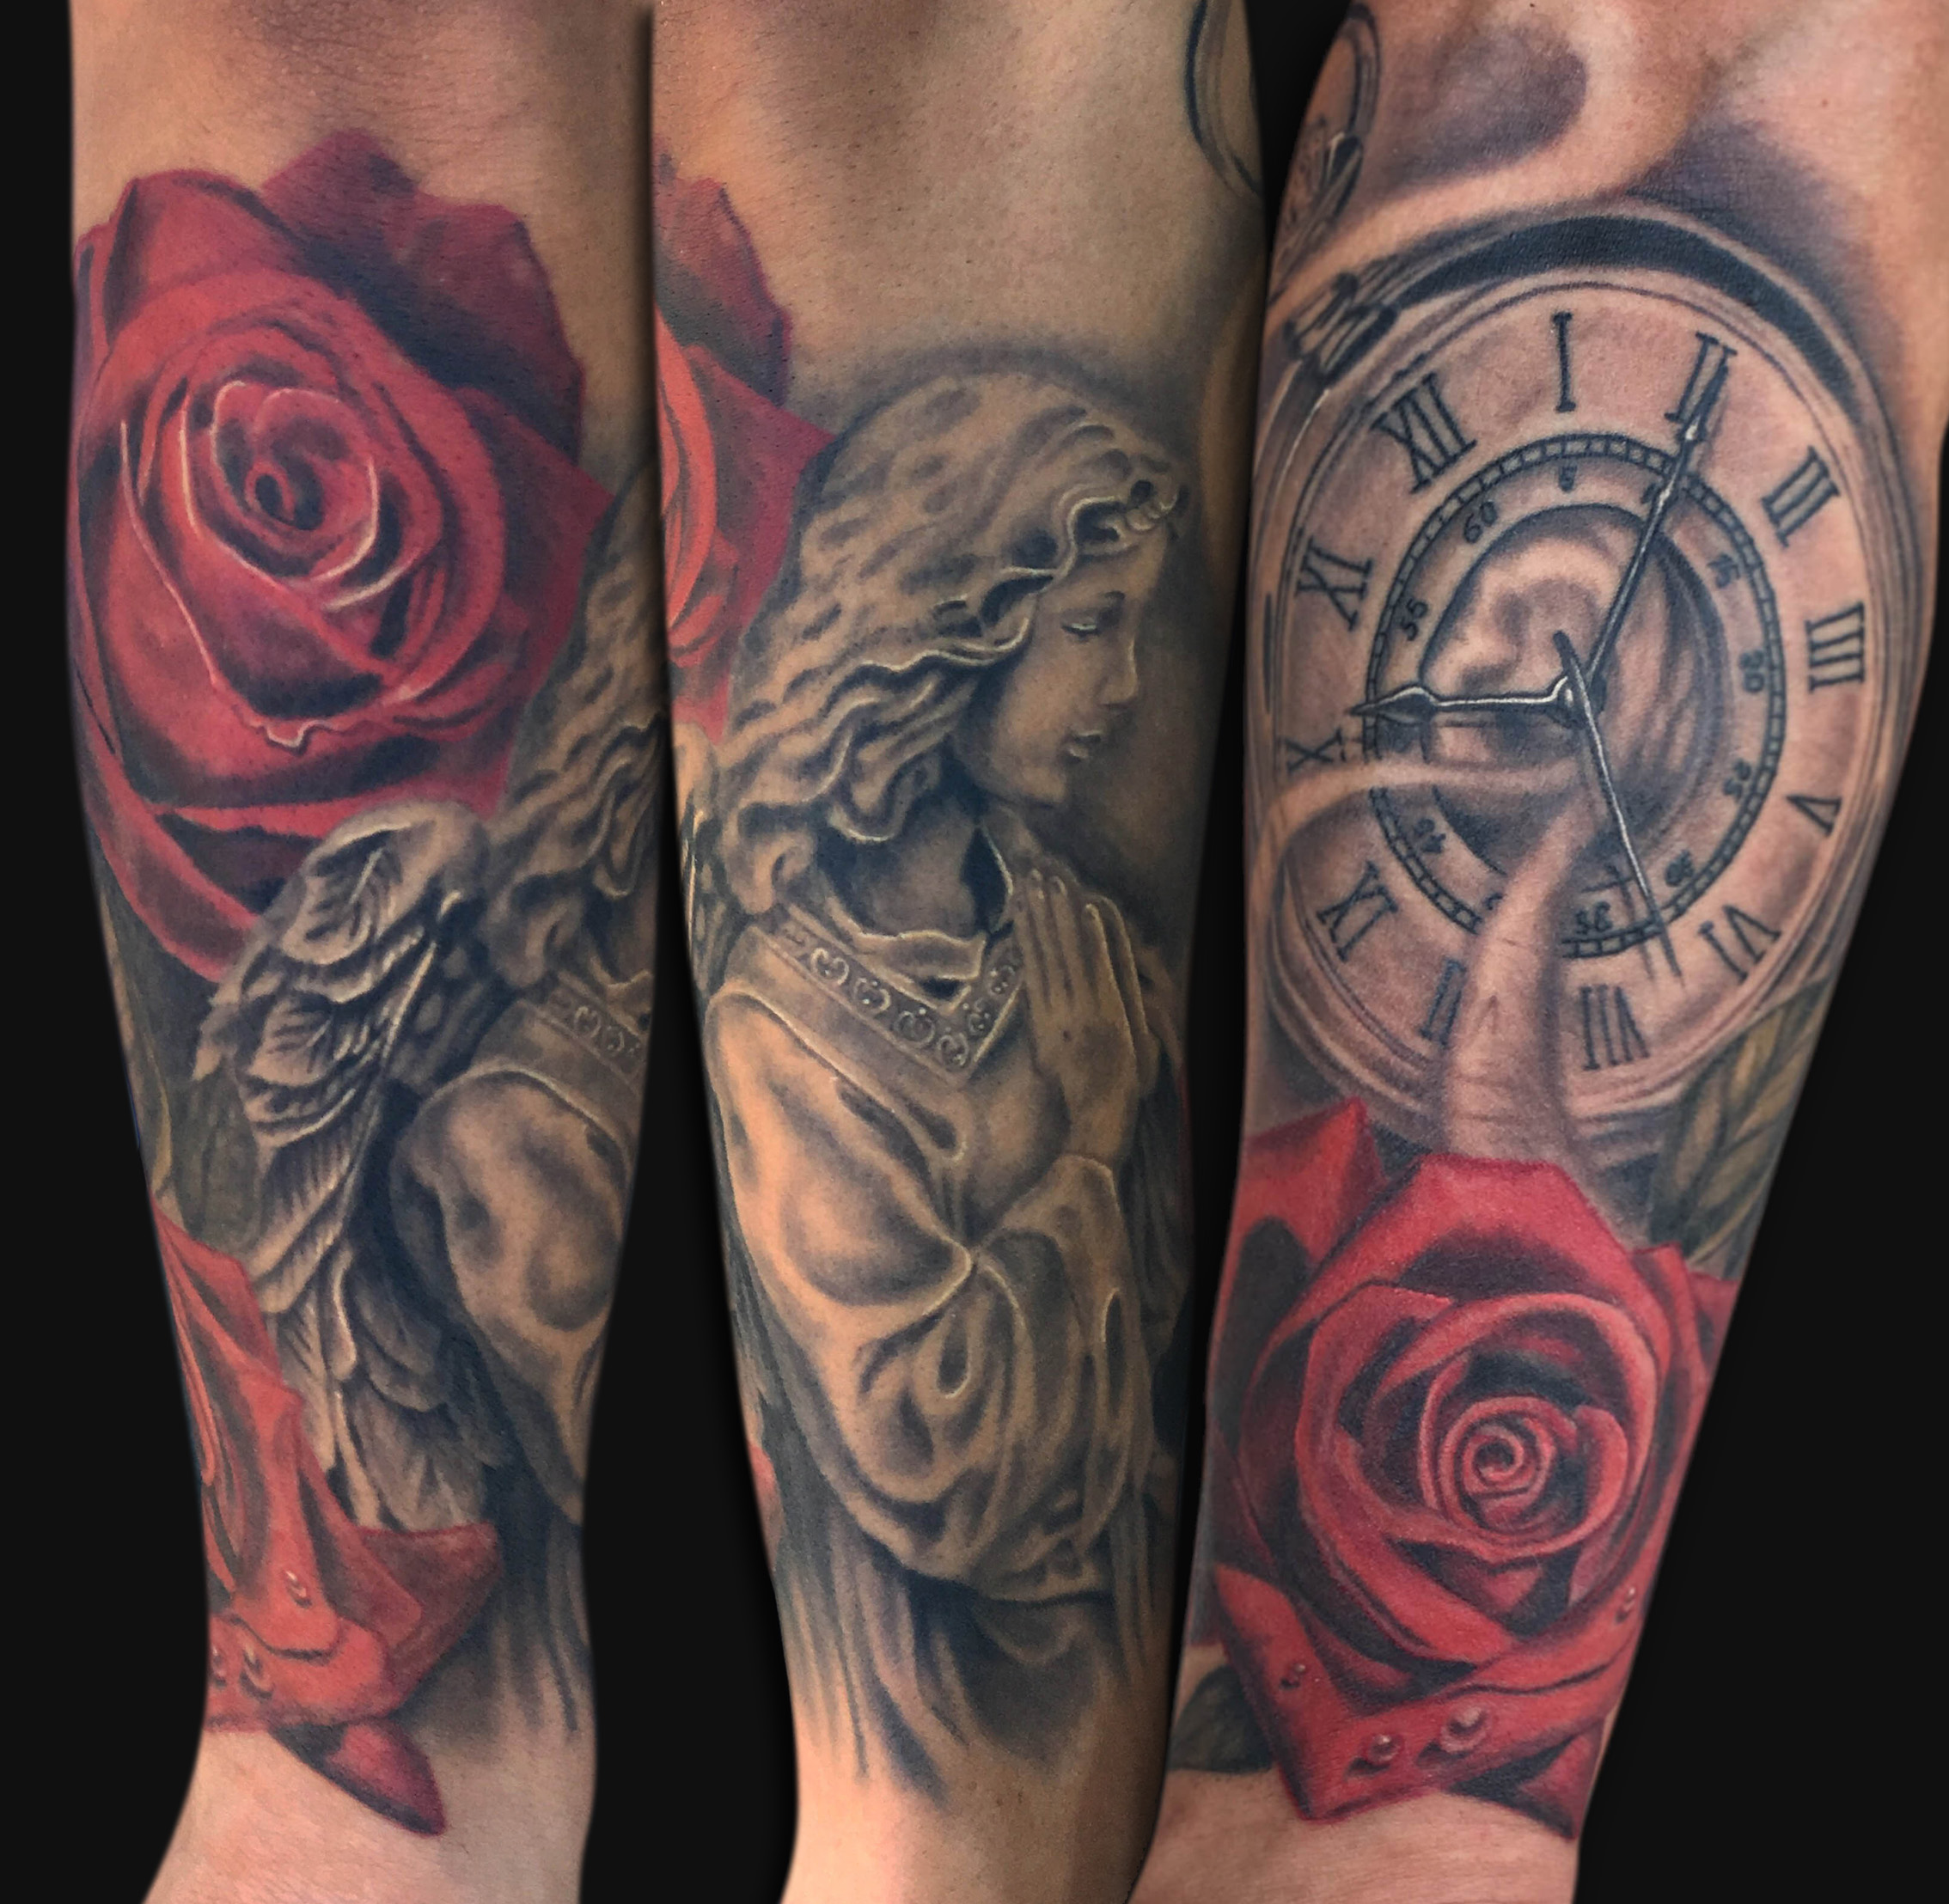 Black And Grey Angel With Clock And Red Rose Tattoo On Arm